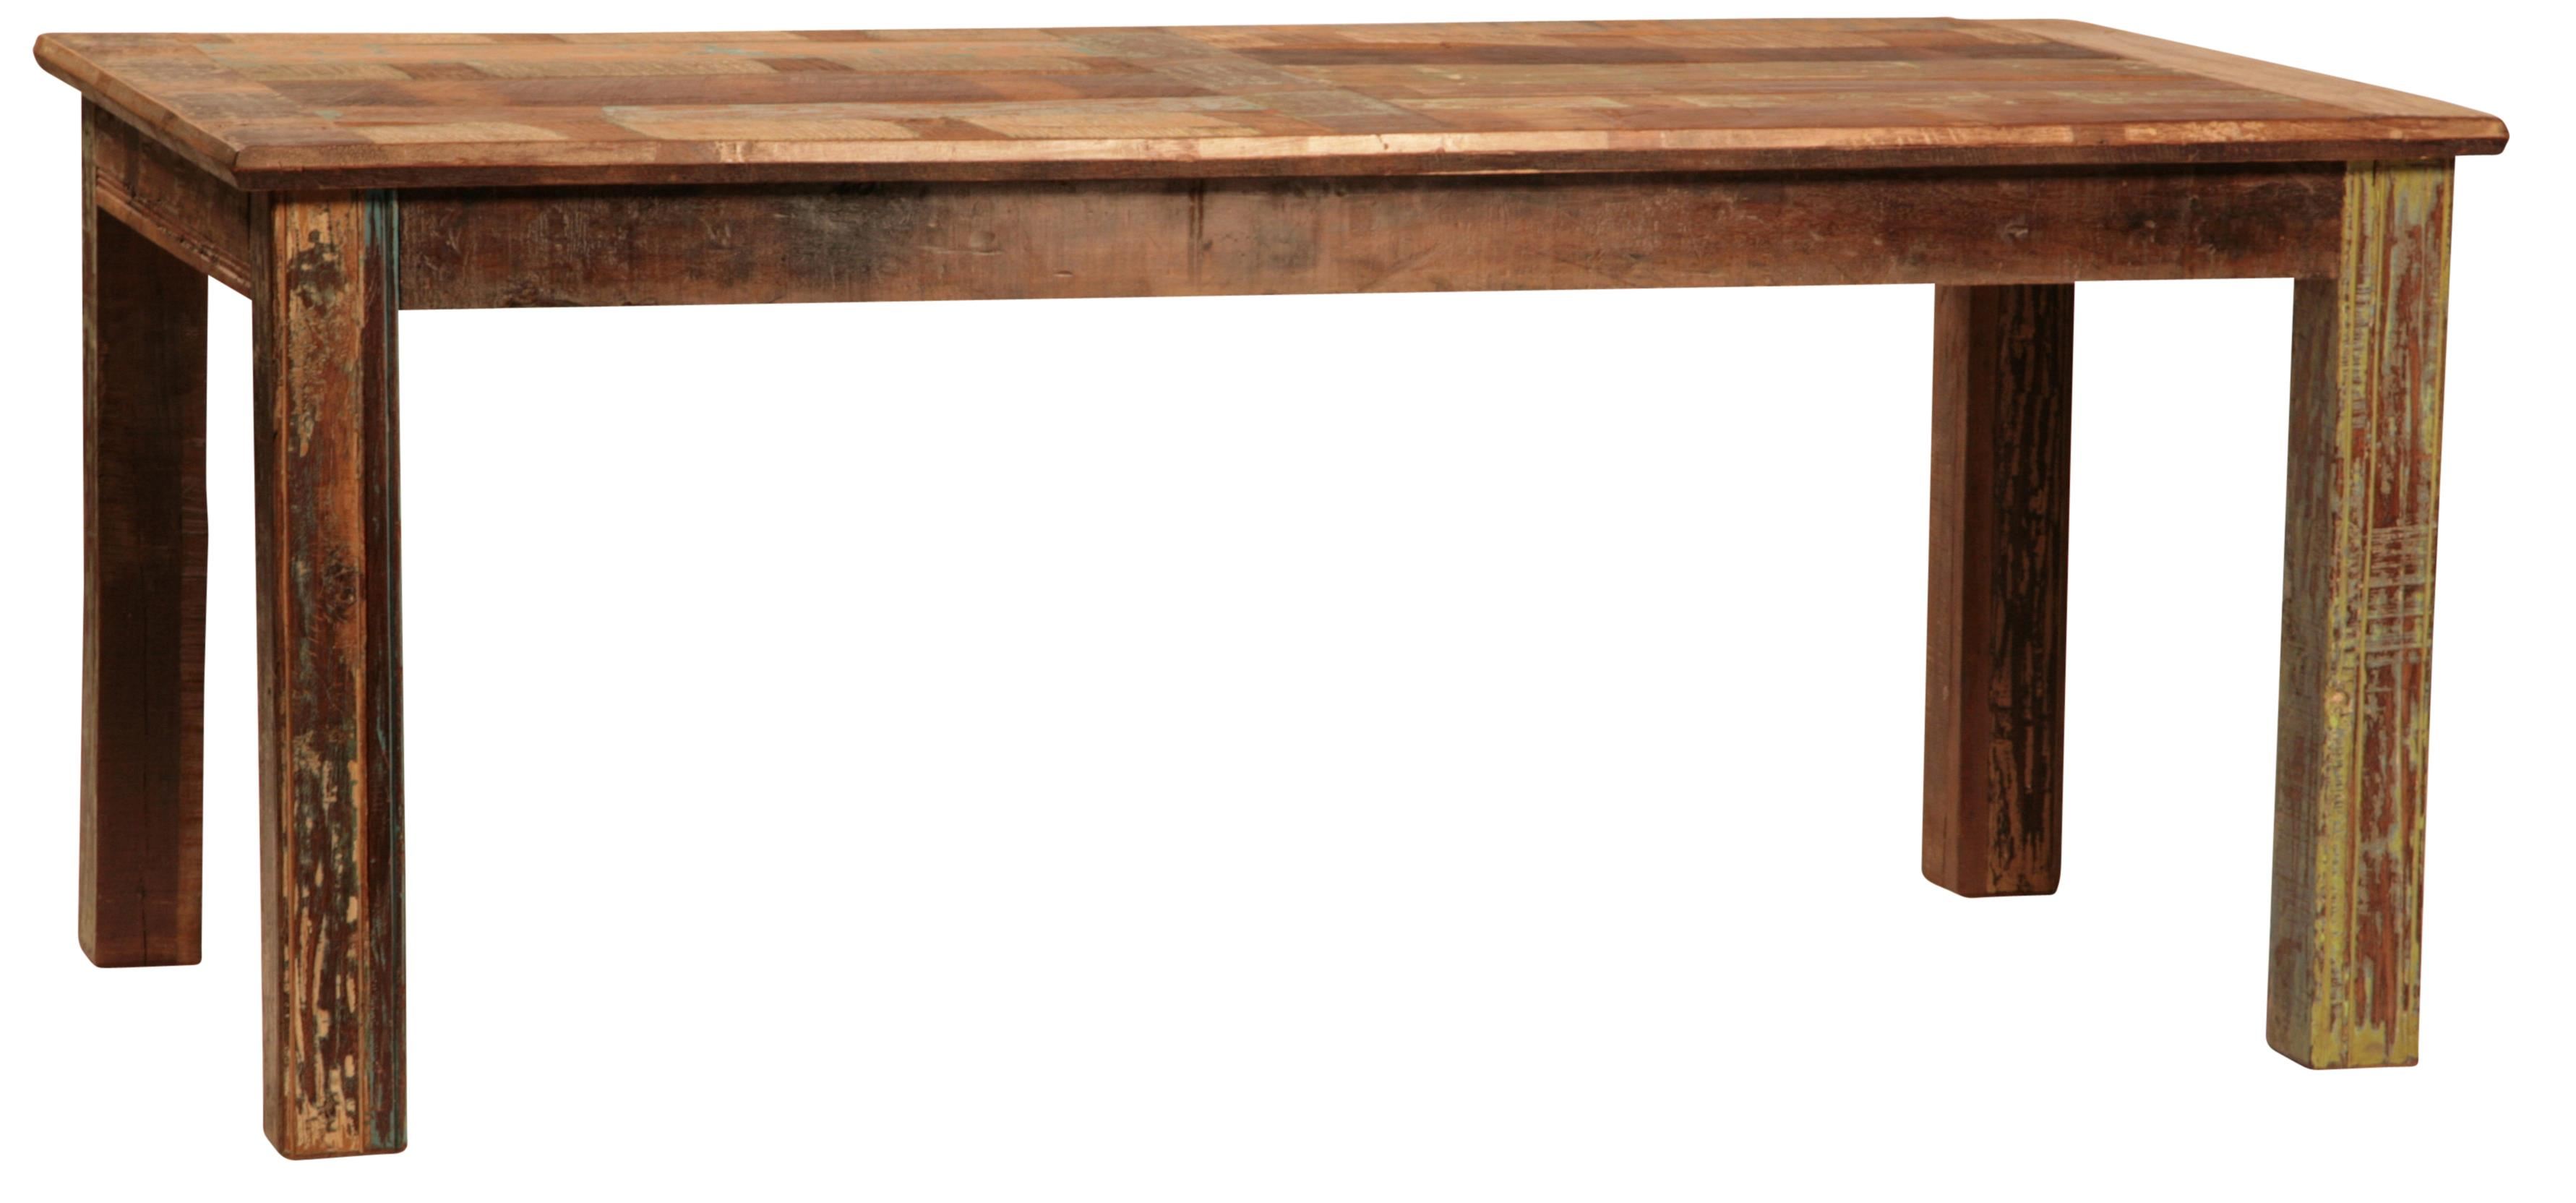 Kitchen tables baton rouge and lafayette louisiana kitchen tables dovetail furniture dovetail dining table workwithnaturefo